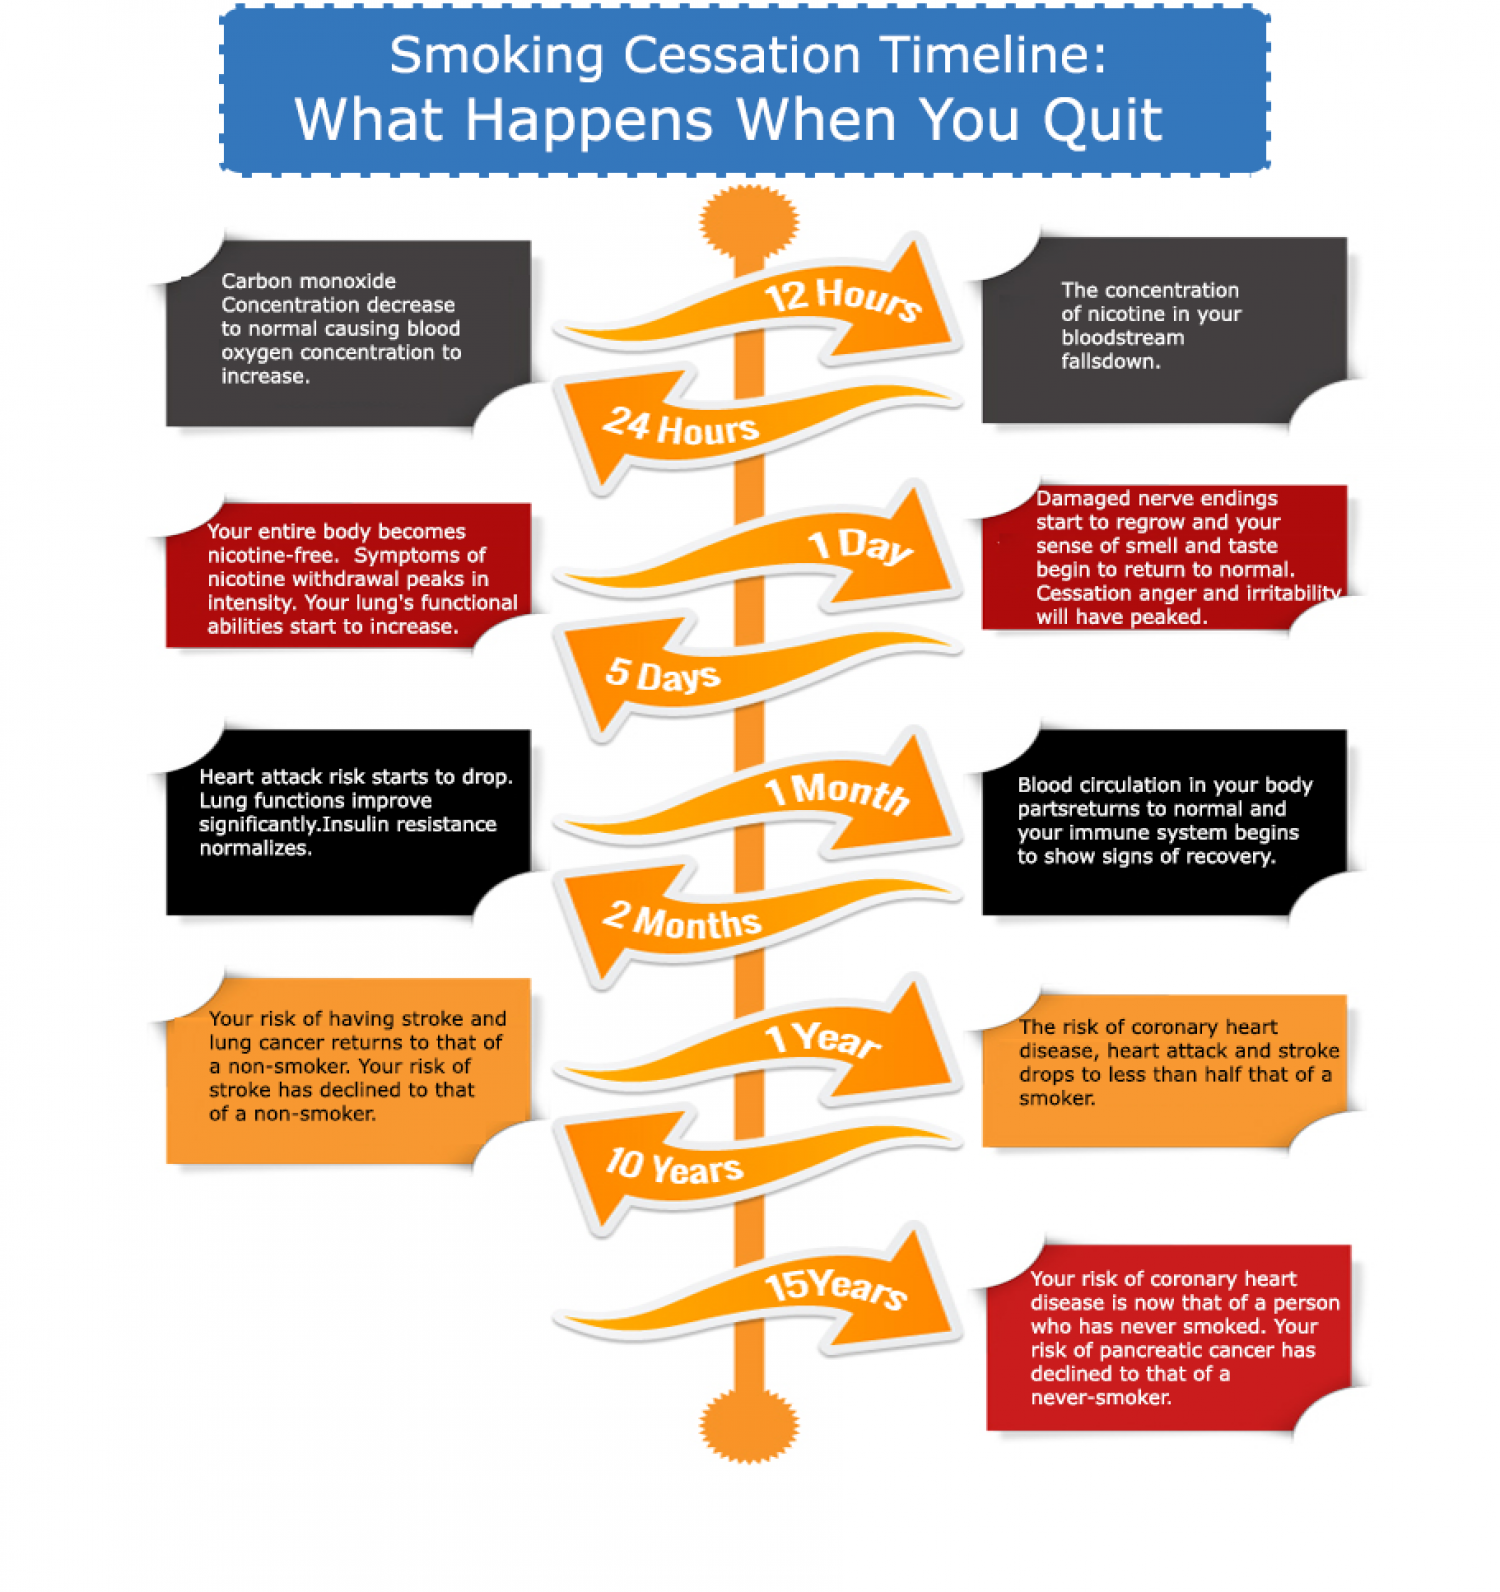 smoking cessation timeline | visual.ly, Skeleton